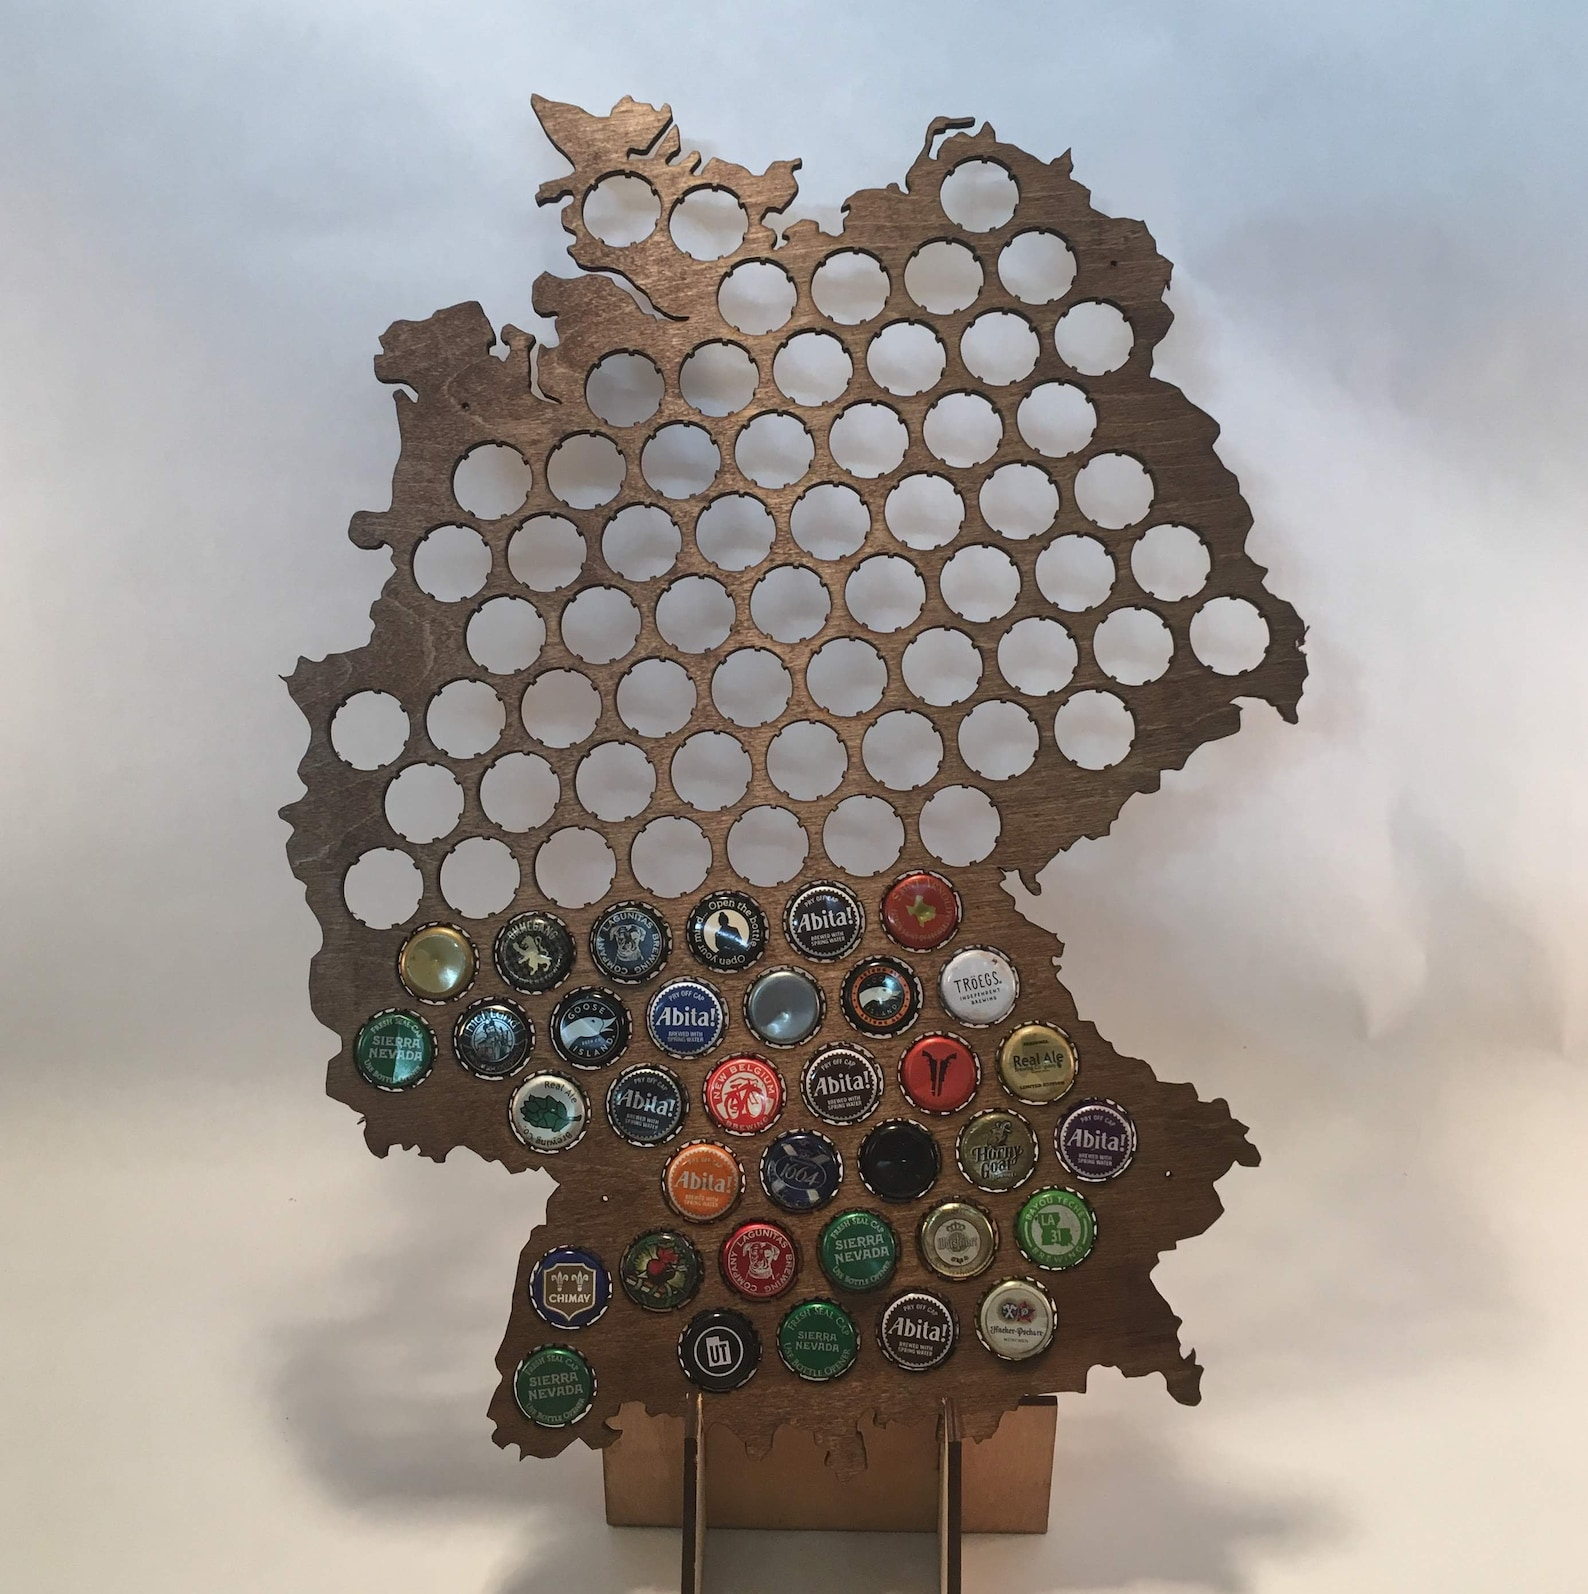 Beer Cap Map of Germany- Perfect for Christmas!